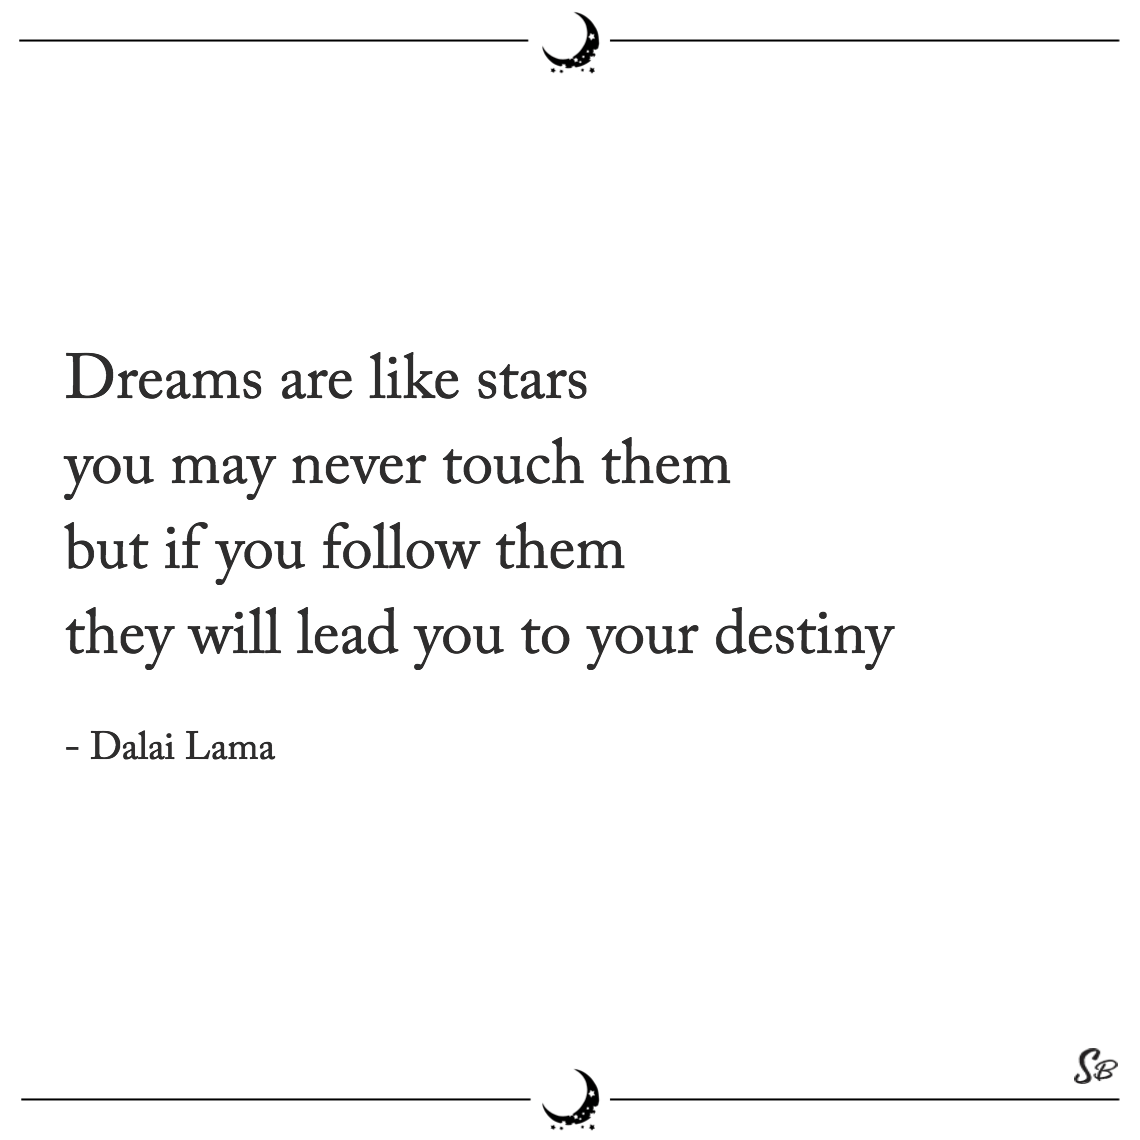 Dreams are like stars you may never touch them but if you follow them they will lead you to your destiny dalai lama